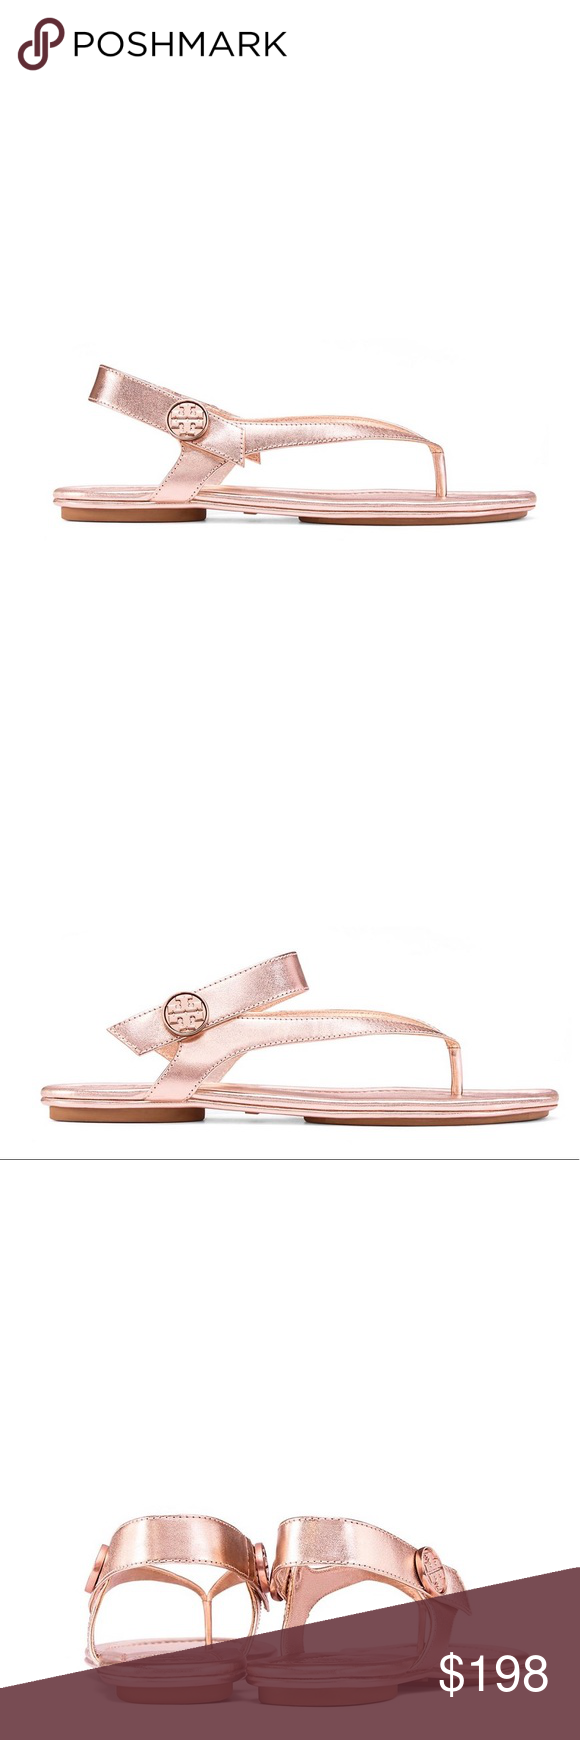 1157c1625e0b Tory Burch MINNIE TRAVEL SANDAL